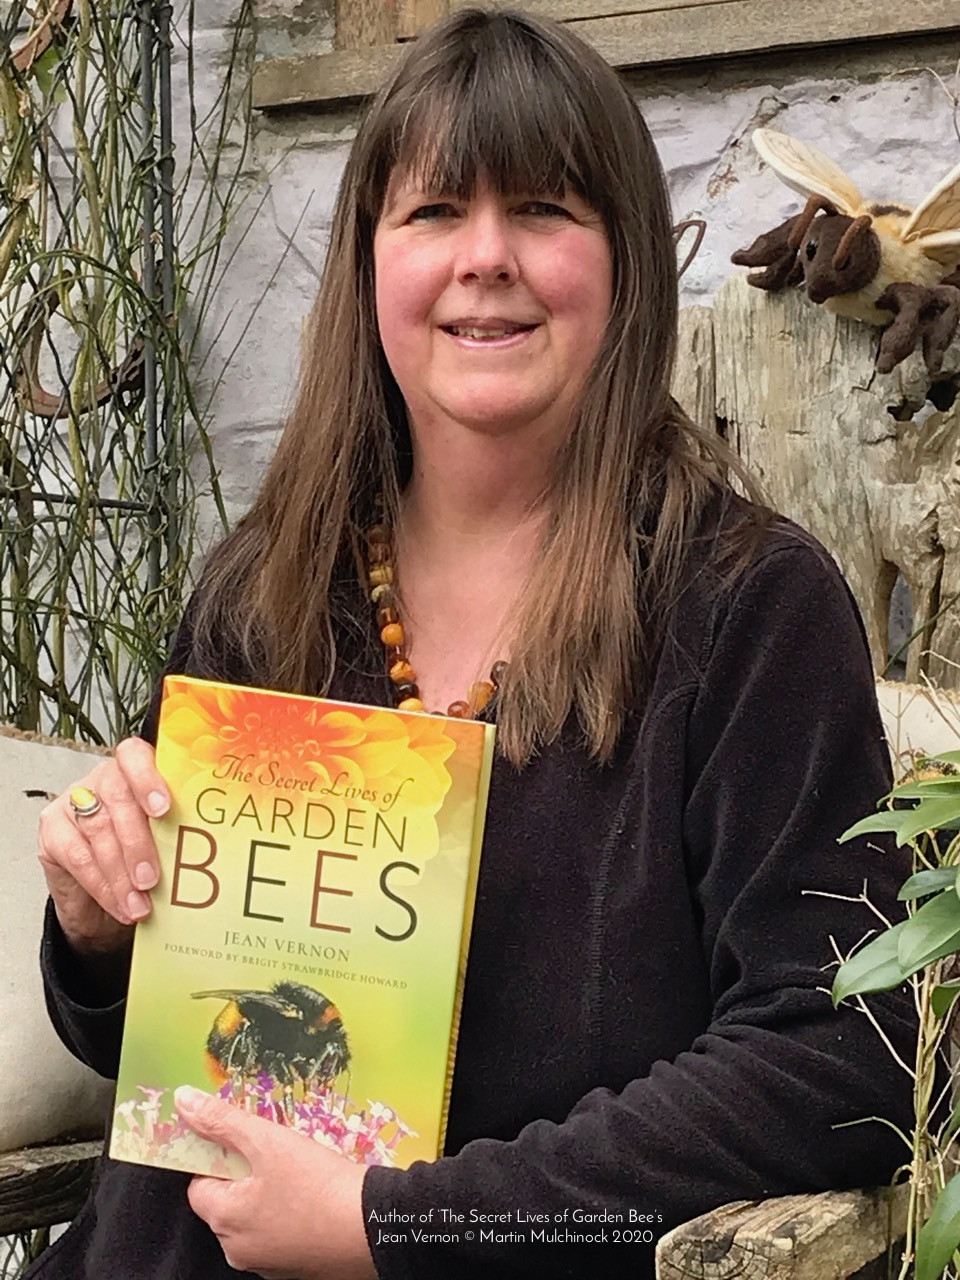 The Secret Lives of Garden Bees by author Jean Vernon